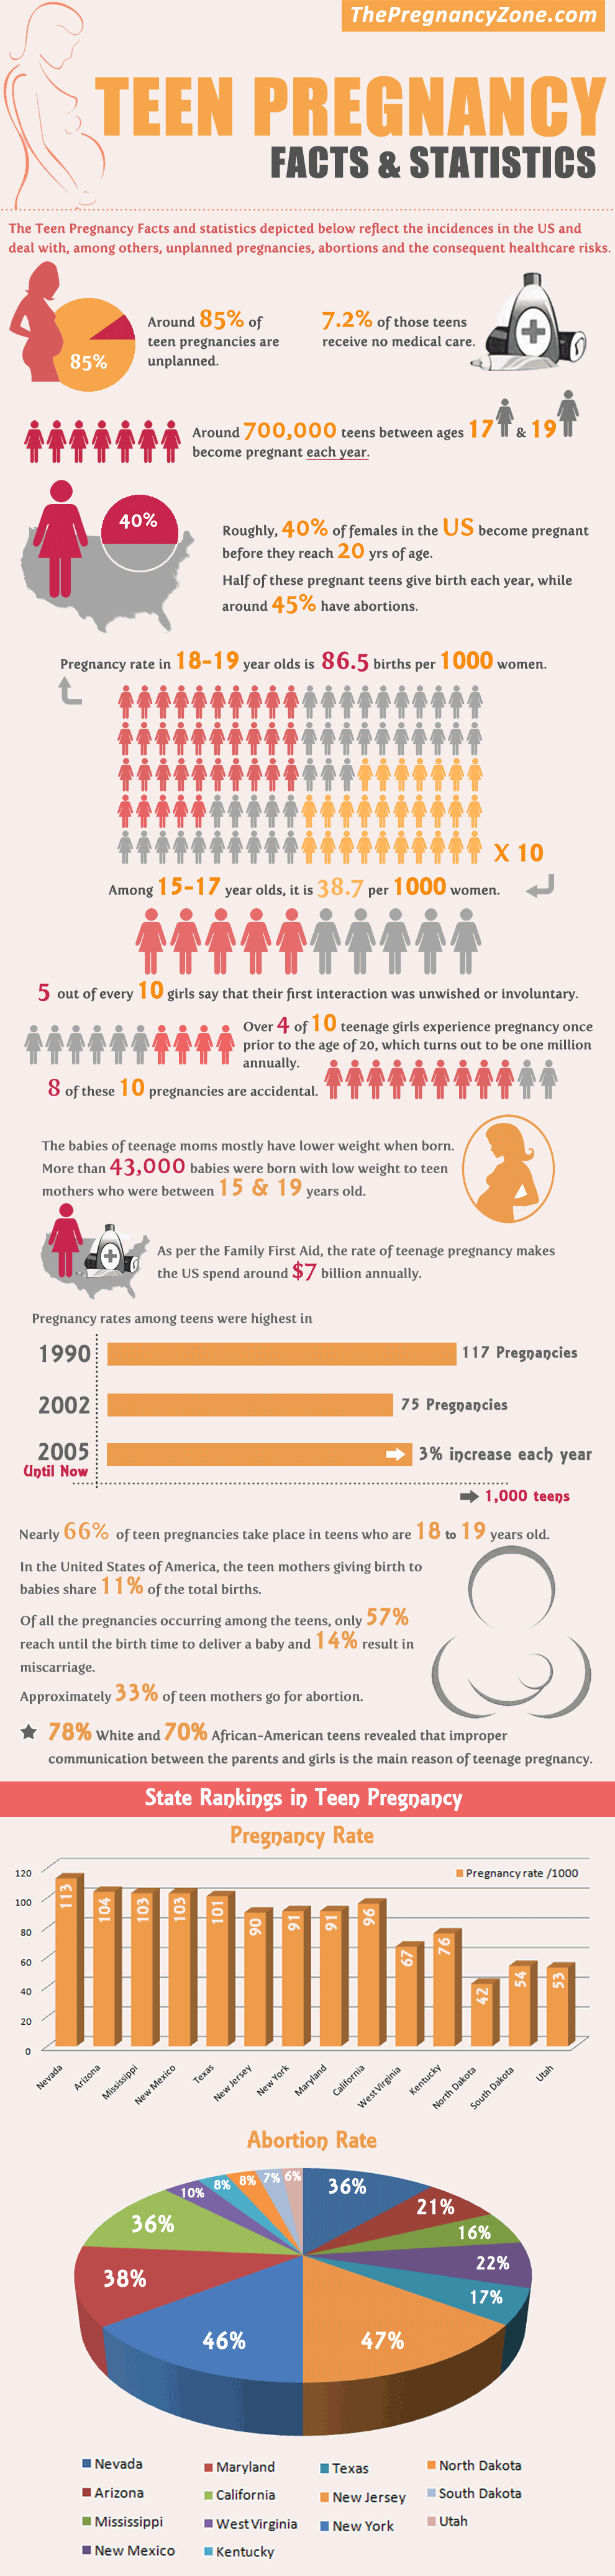 Teen Pregnancy Facts (Infographic)